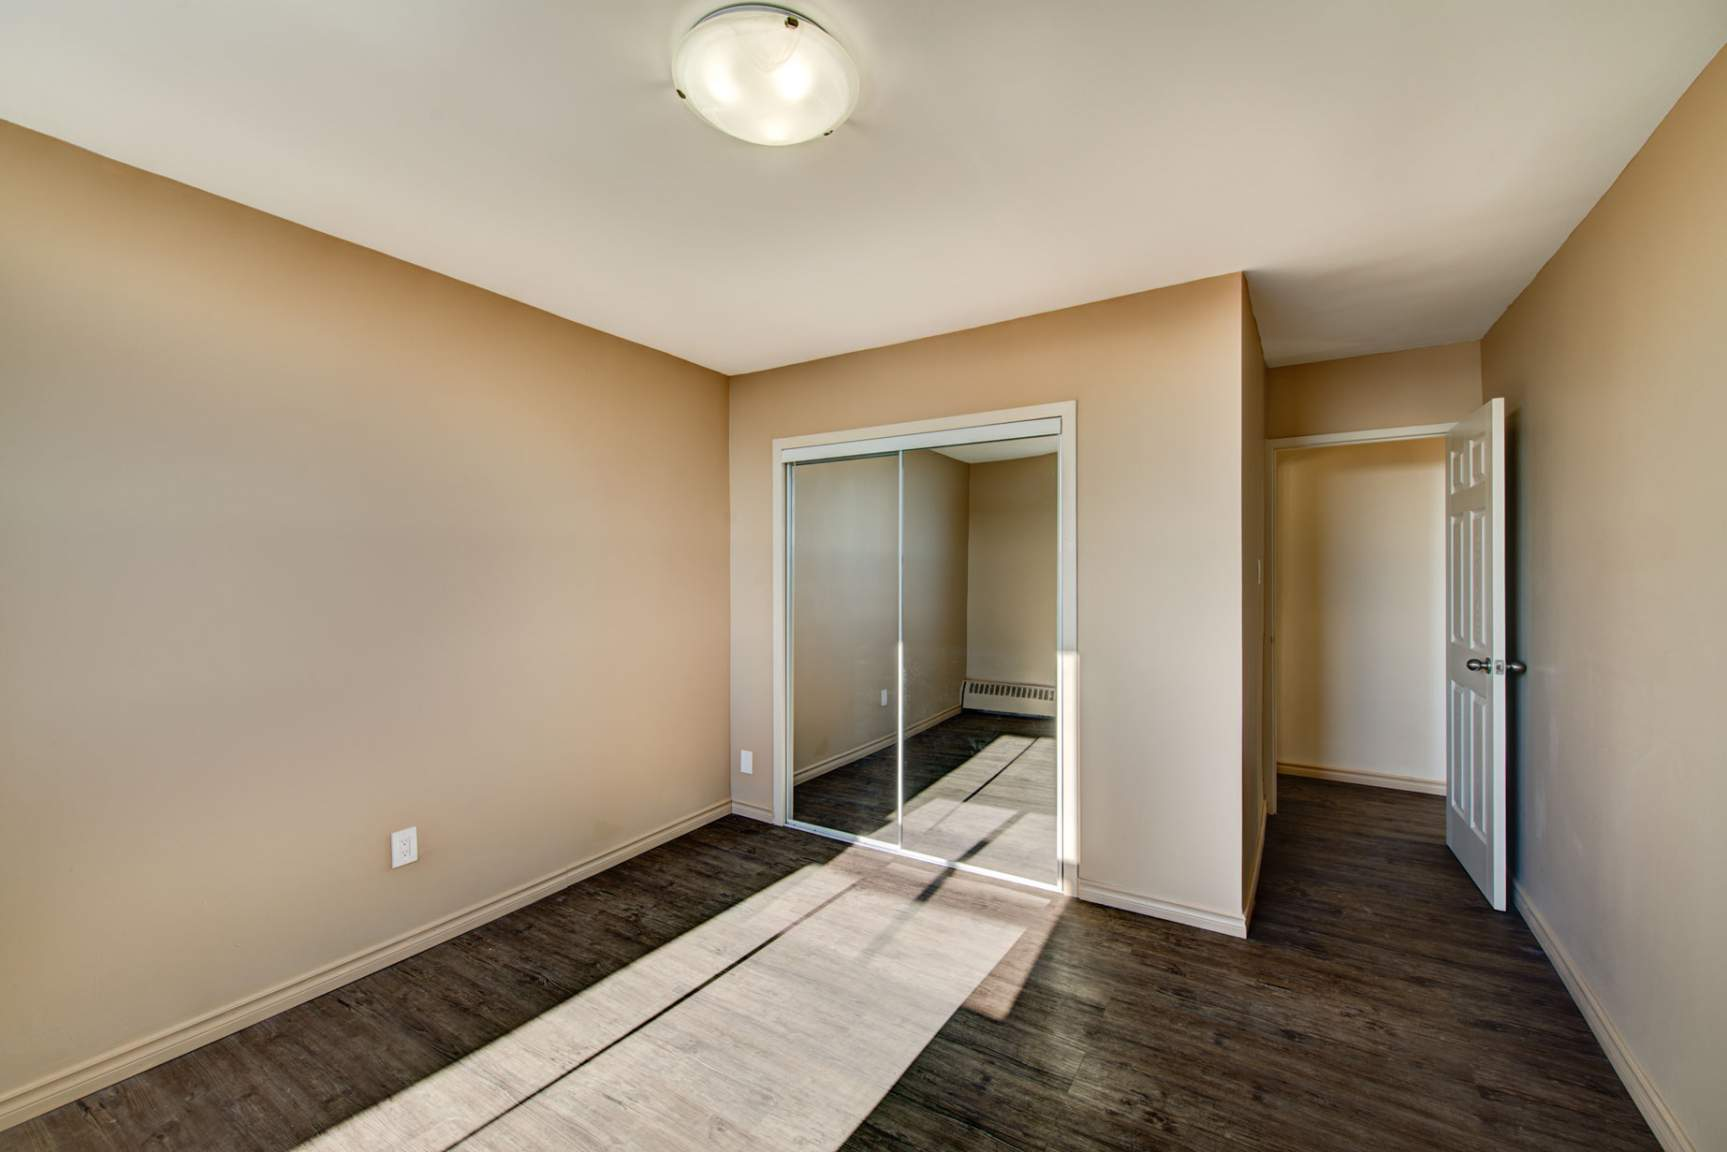 1 bedroom Apartments for rent in North-York at Hunters Lodge - Photo 28 - RentersPages – L400651